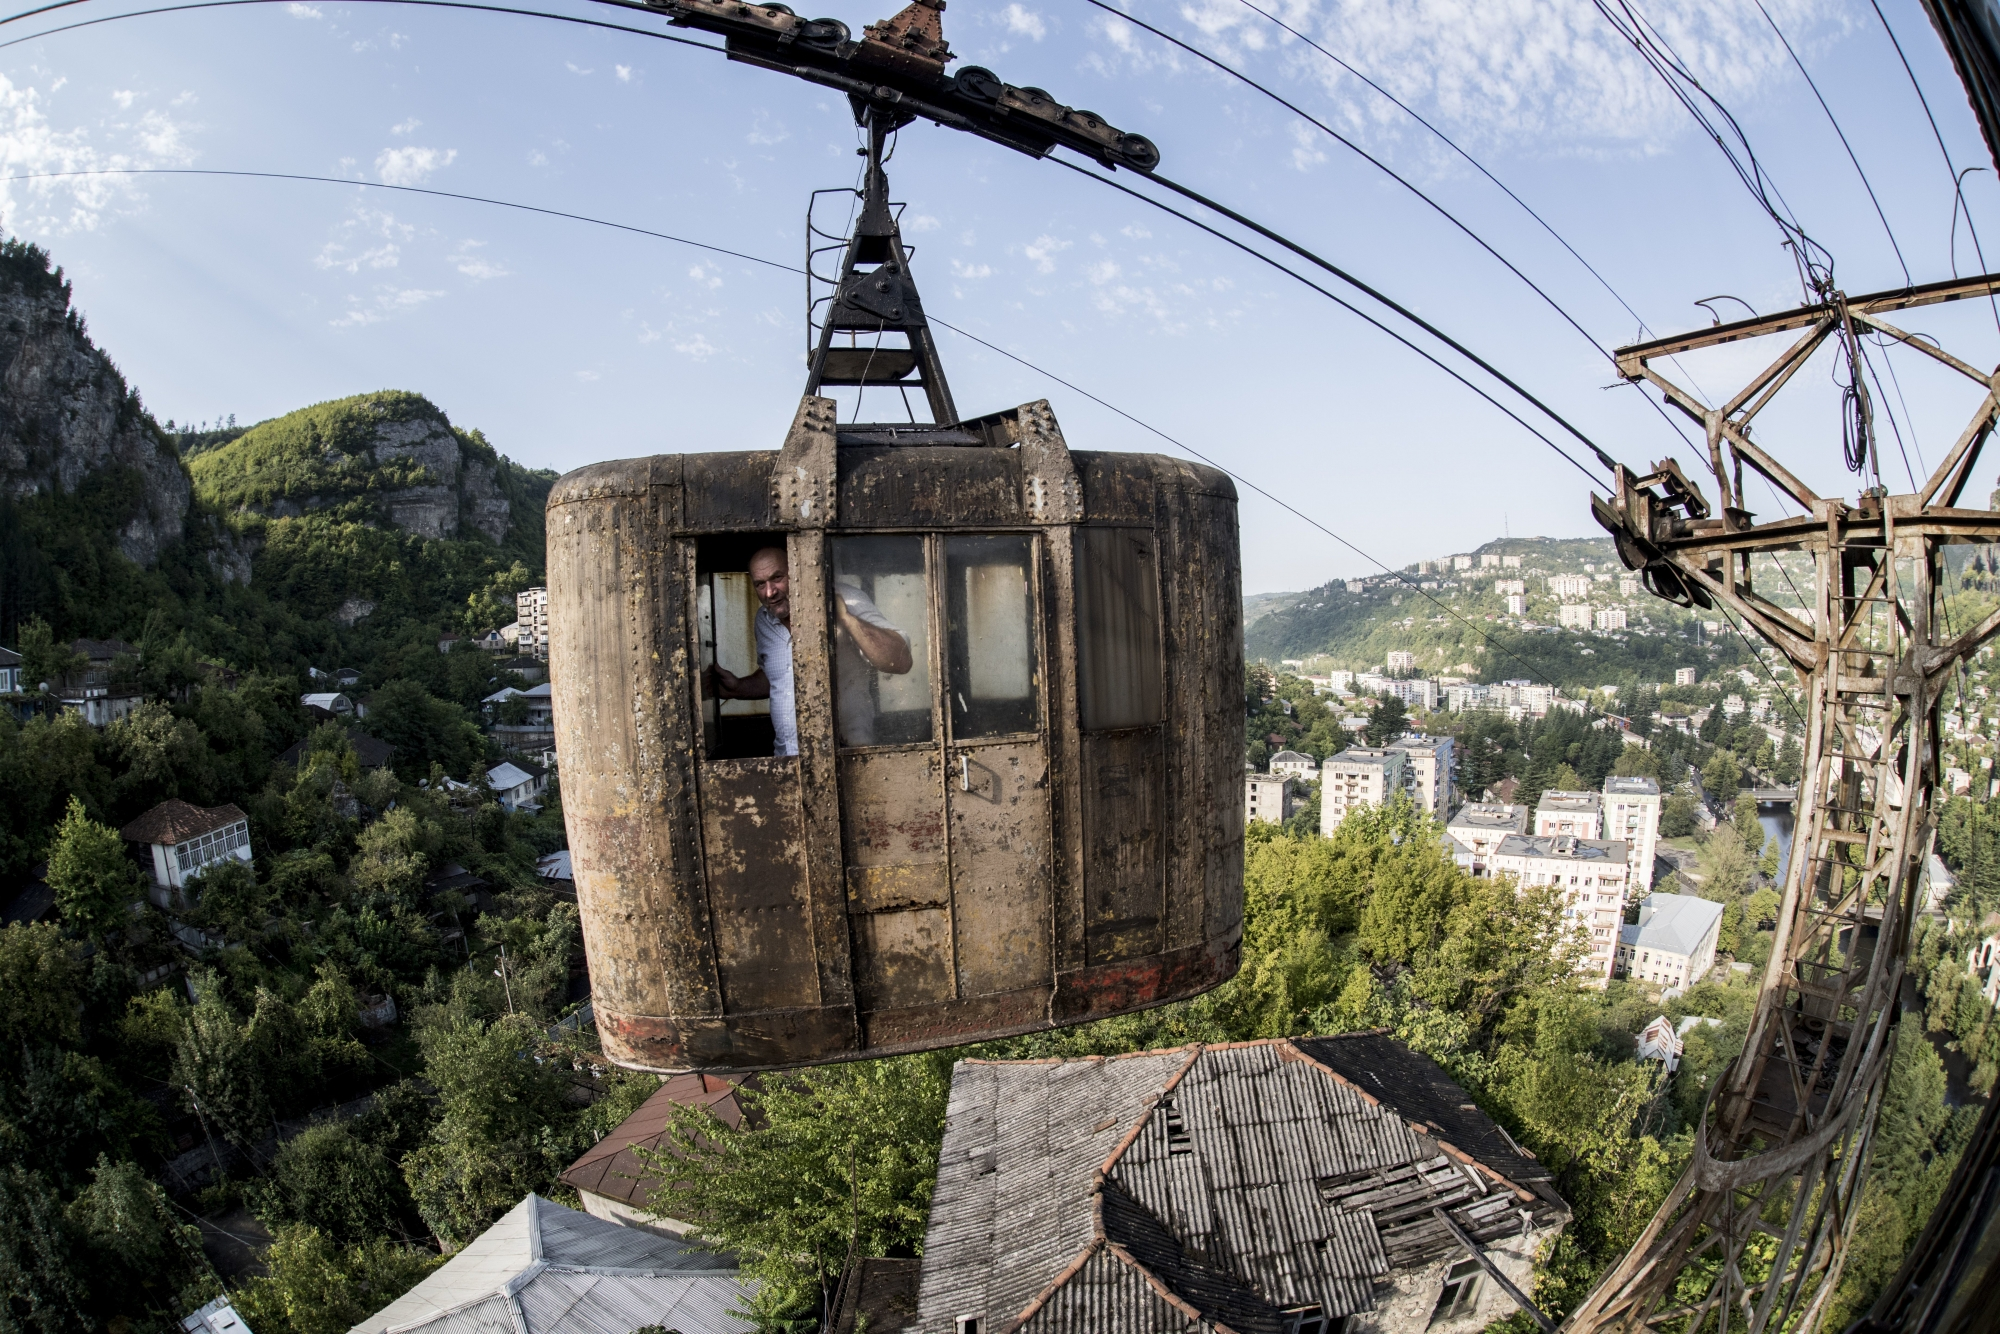 Georgia. Chiatura - the city of cable cars 97